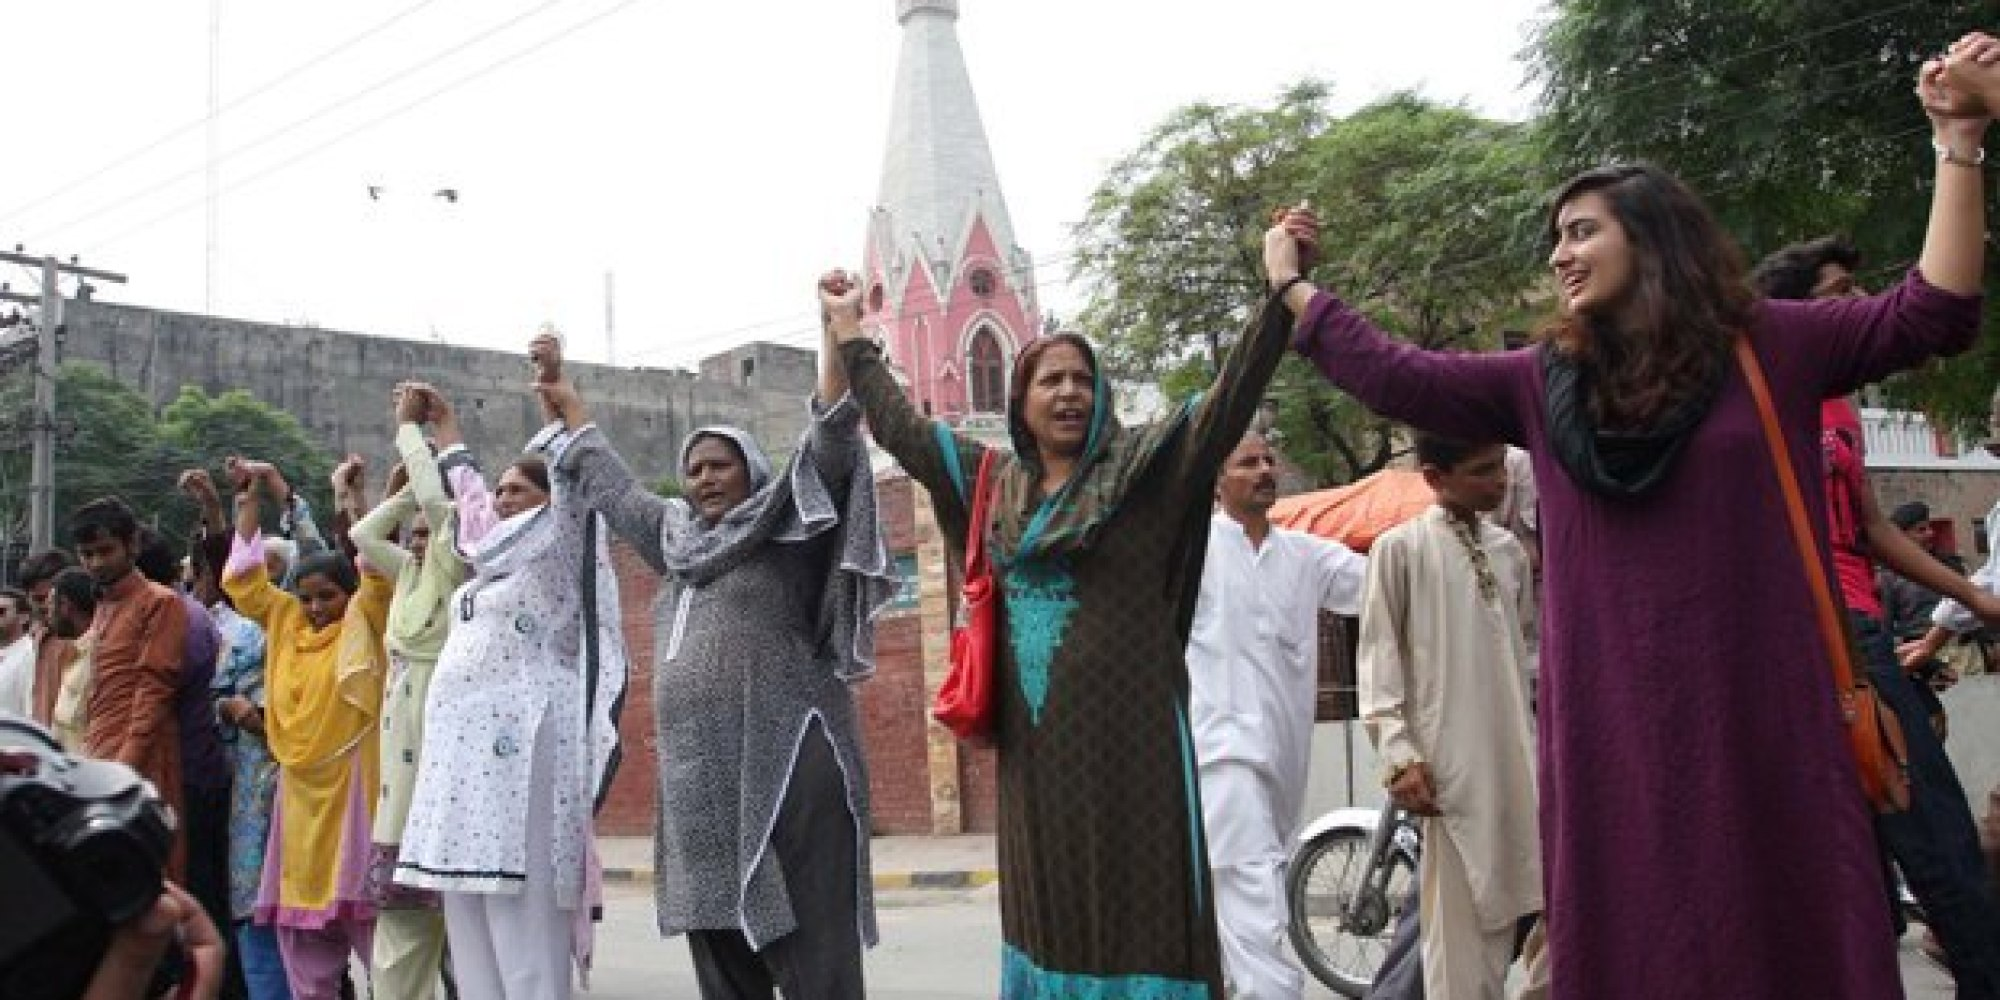 Pakistani Muslims Form Human Chain To Protect Christians